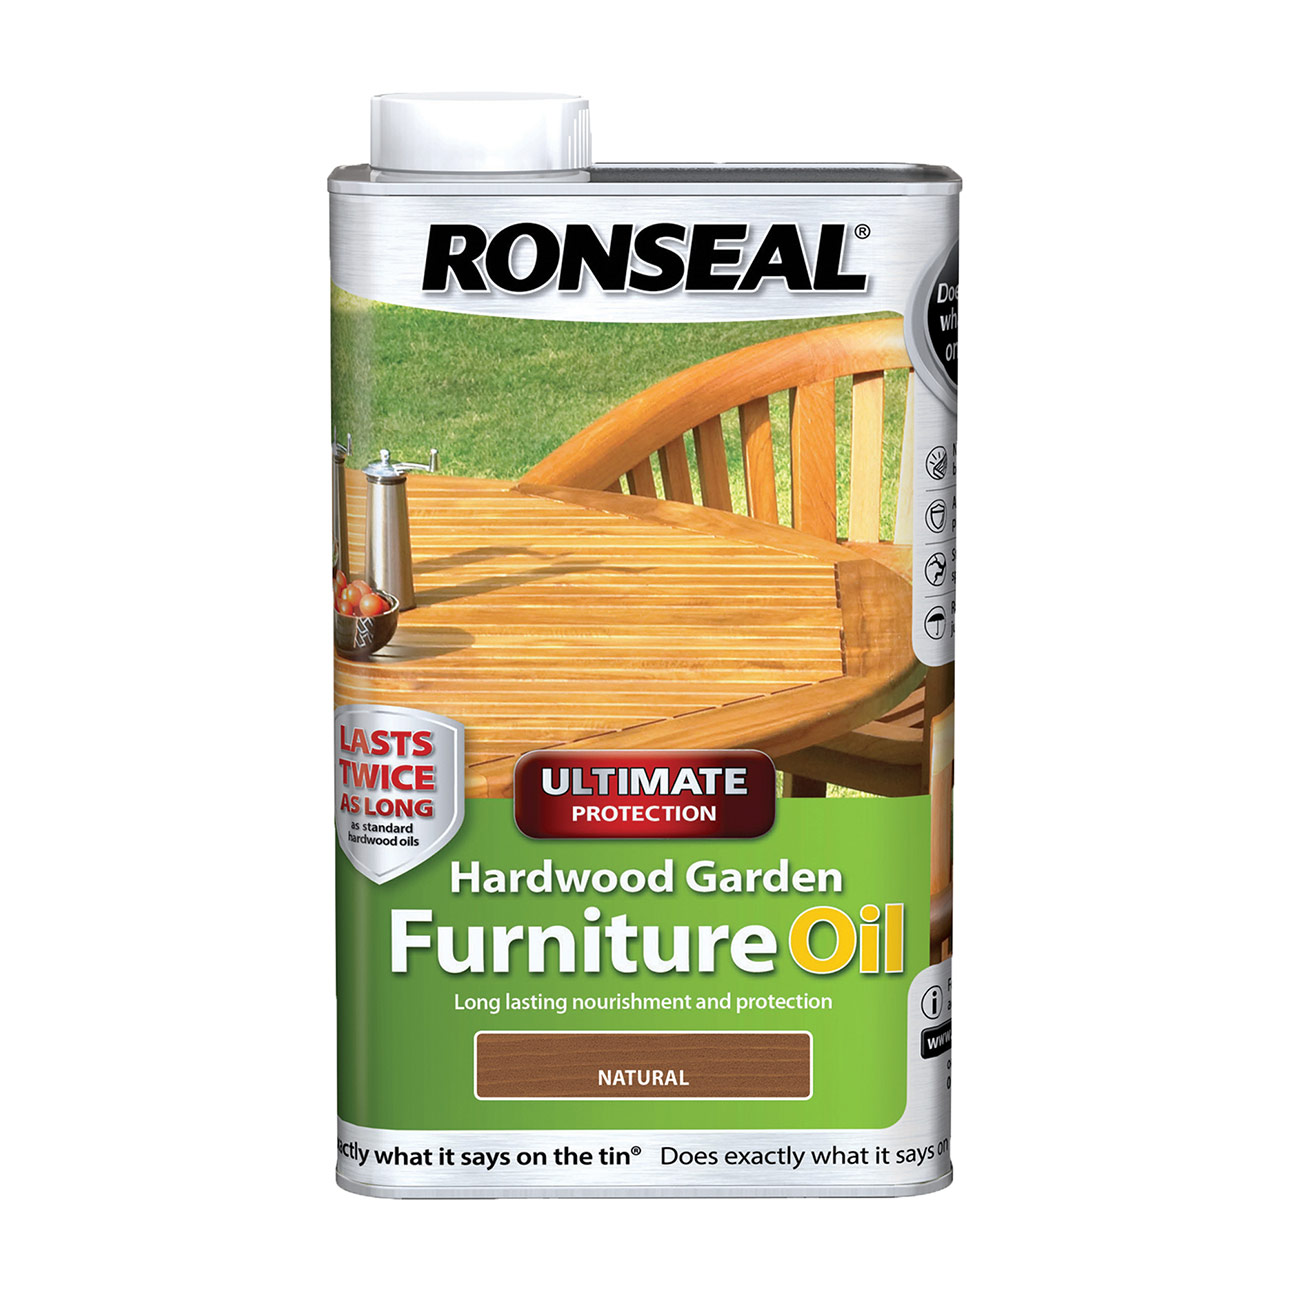 RONSEAL® ULTIMATE PROTECTION HARDWOOD FURNITURE OIL WATER BASED NATURAL CLEAR 1L